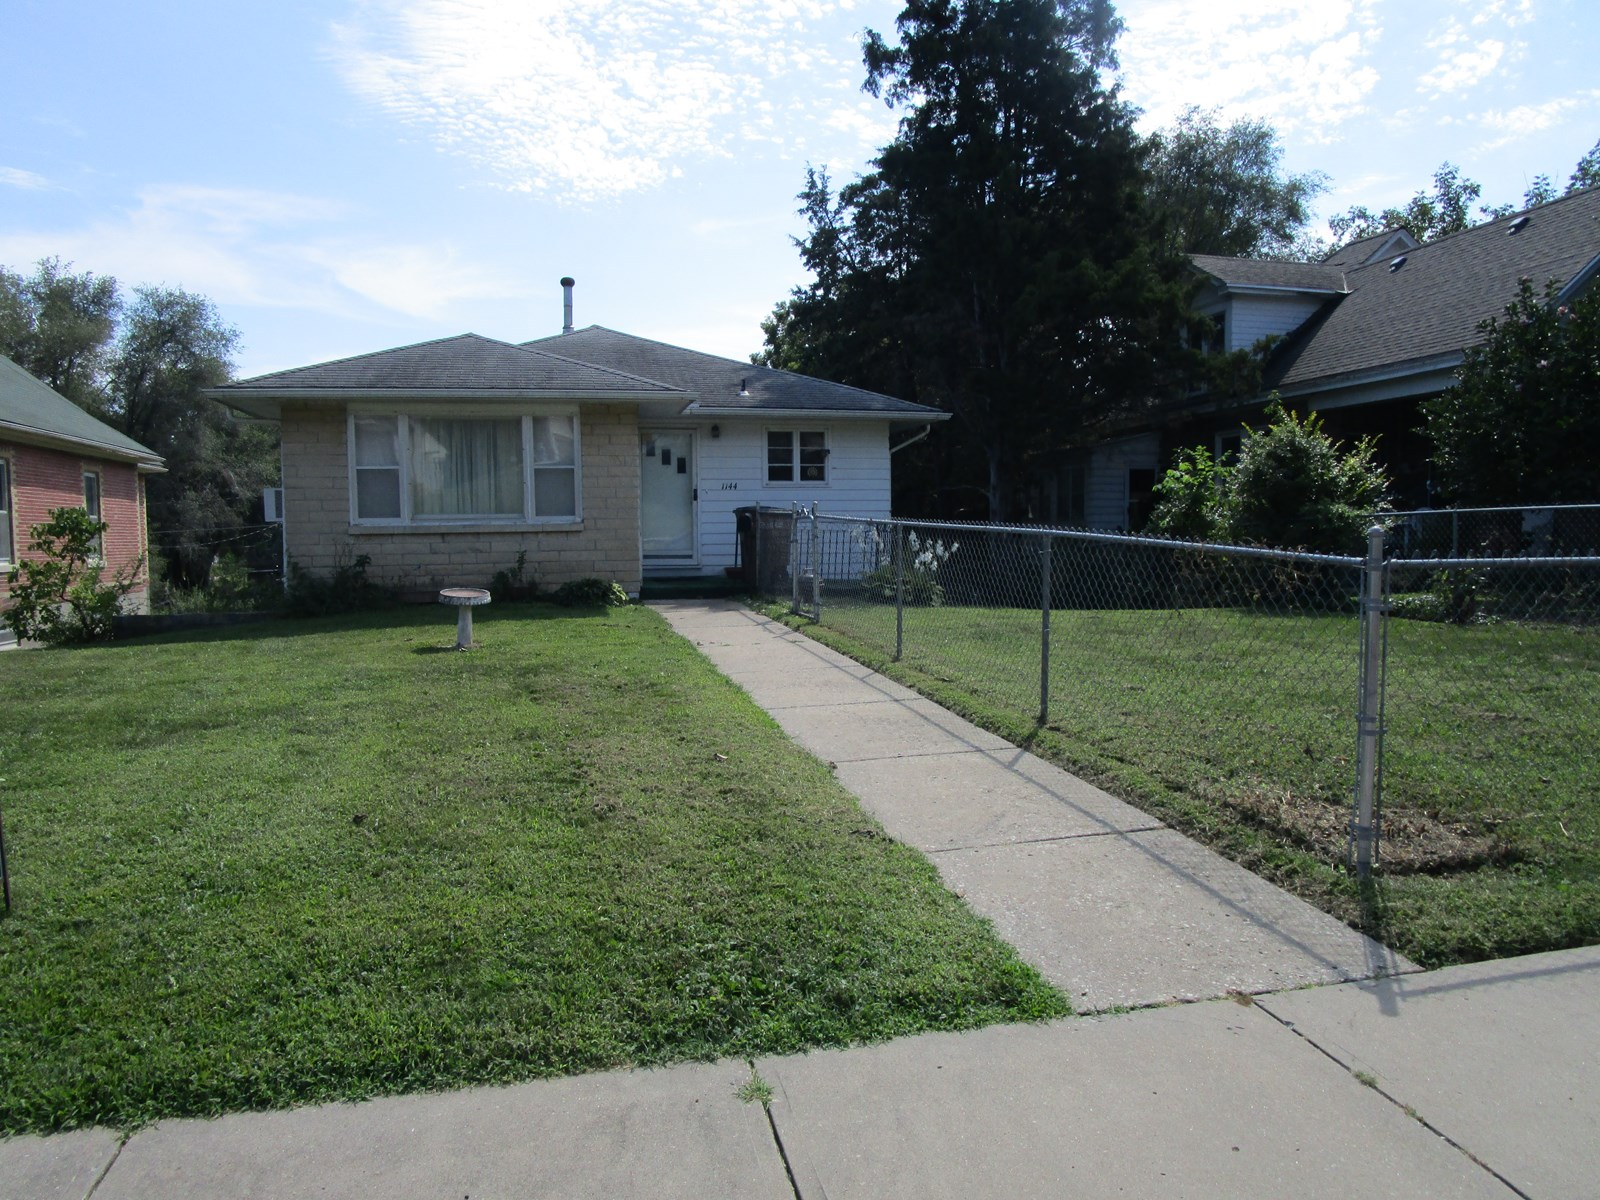 3 Bedroom 1 Bath With Walk Out Basement